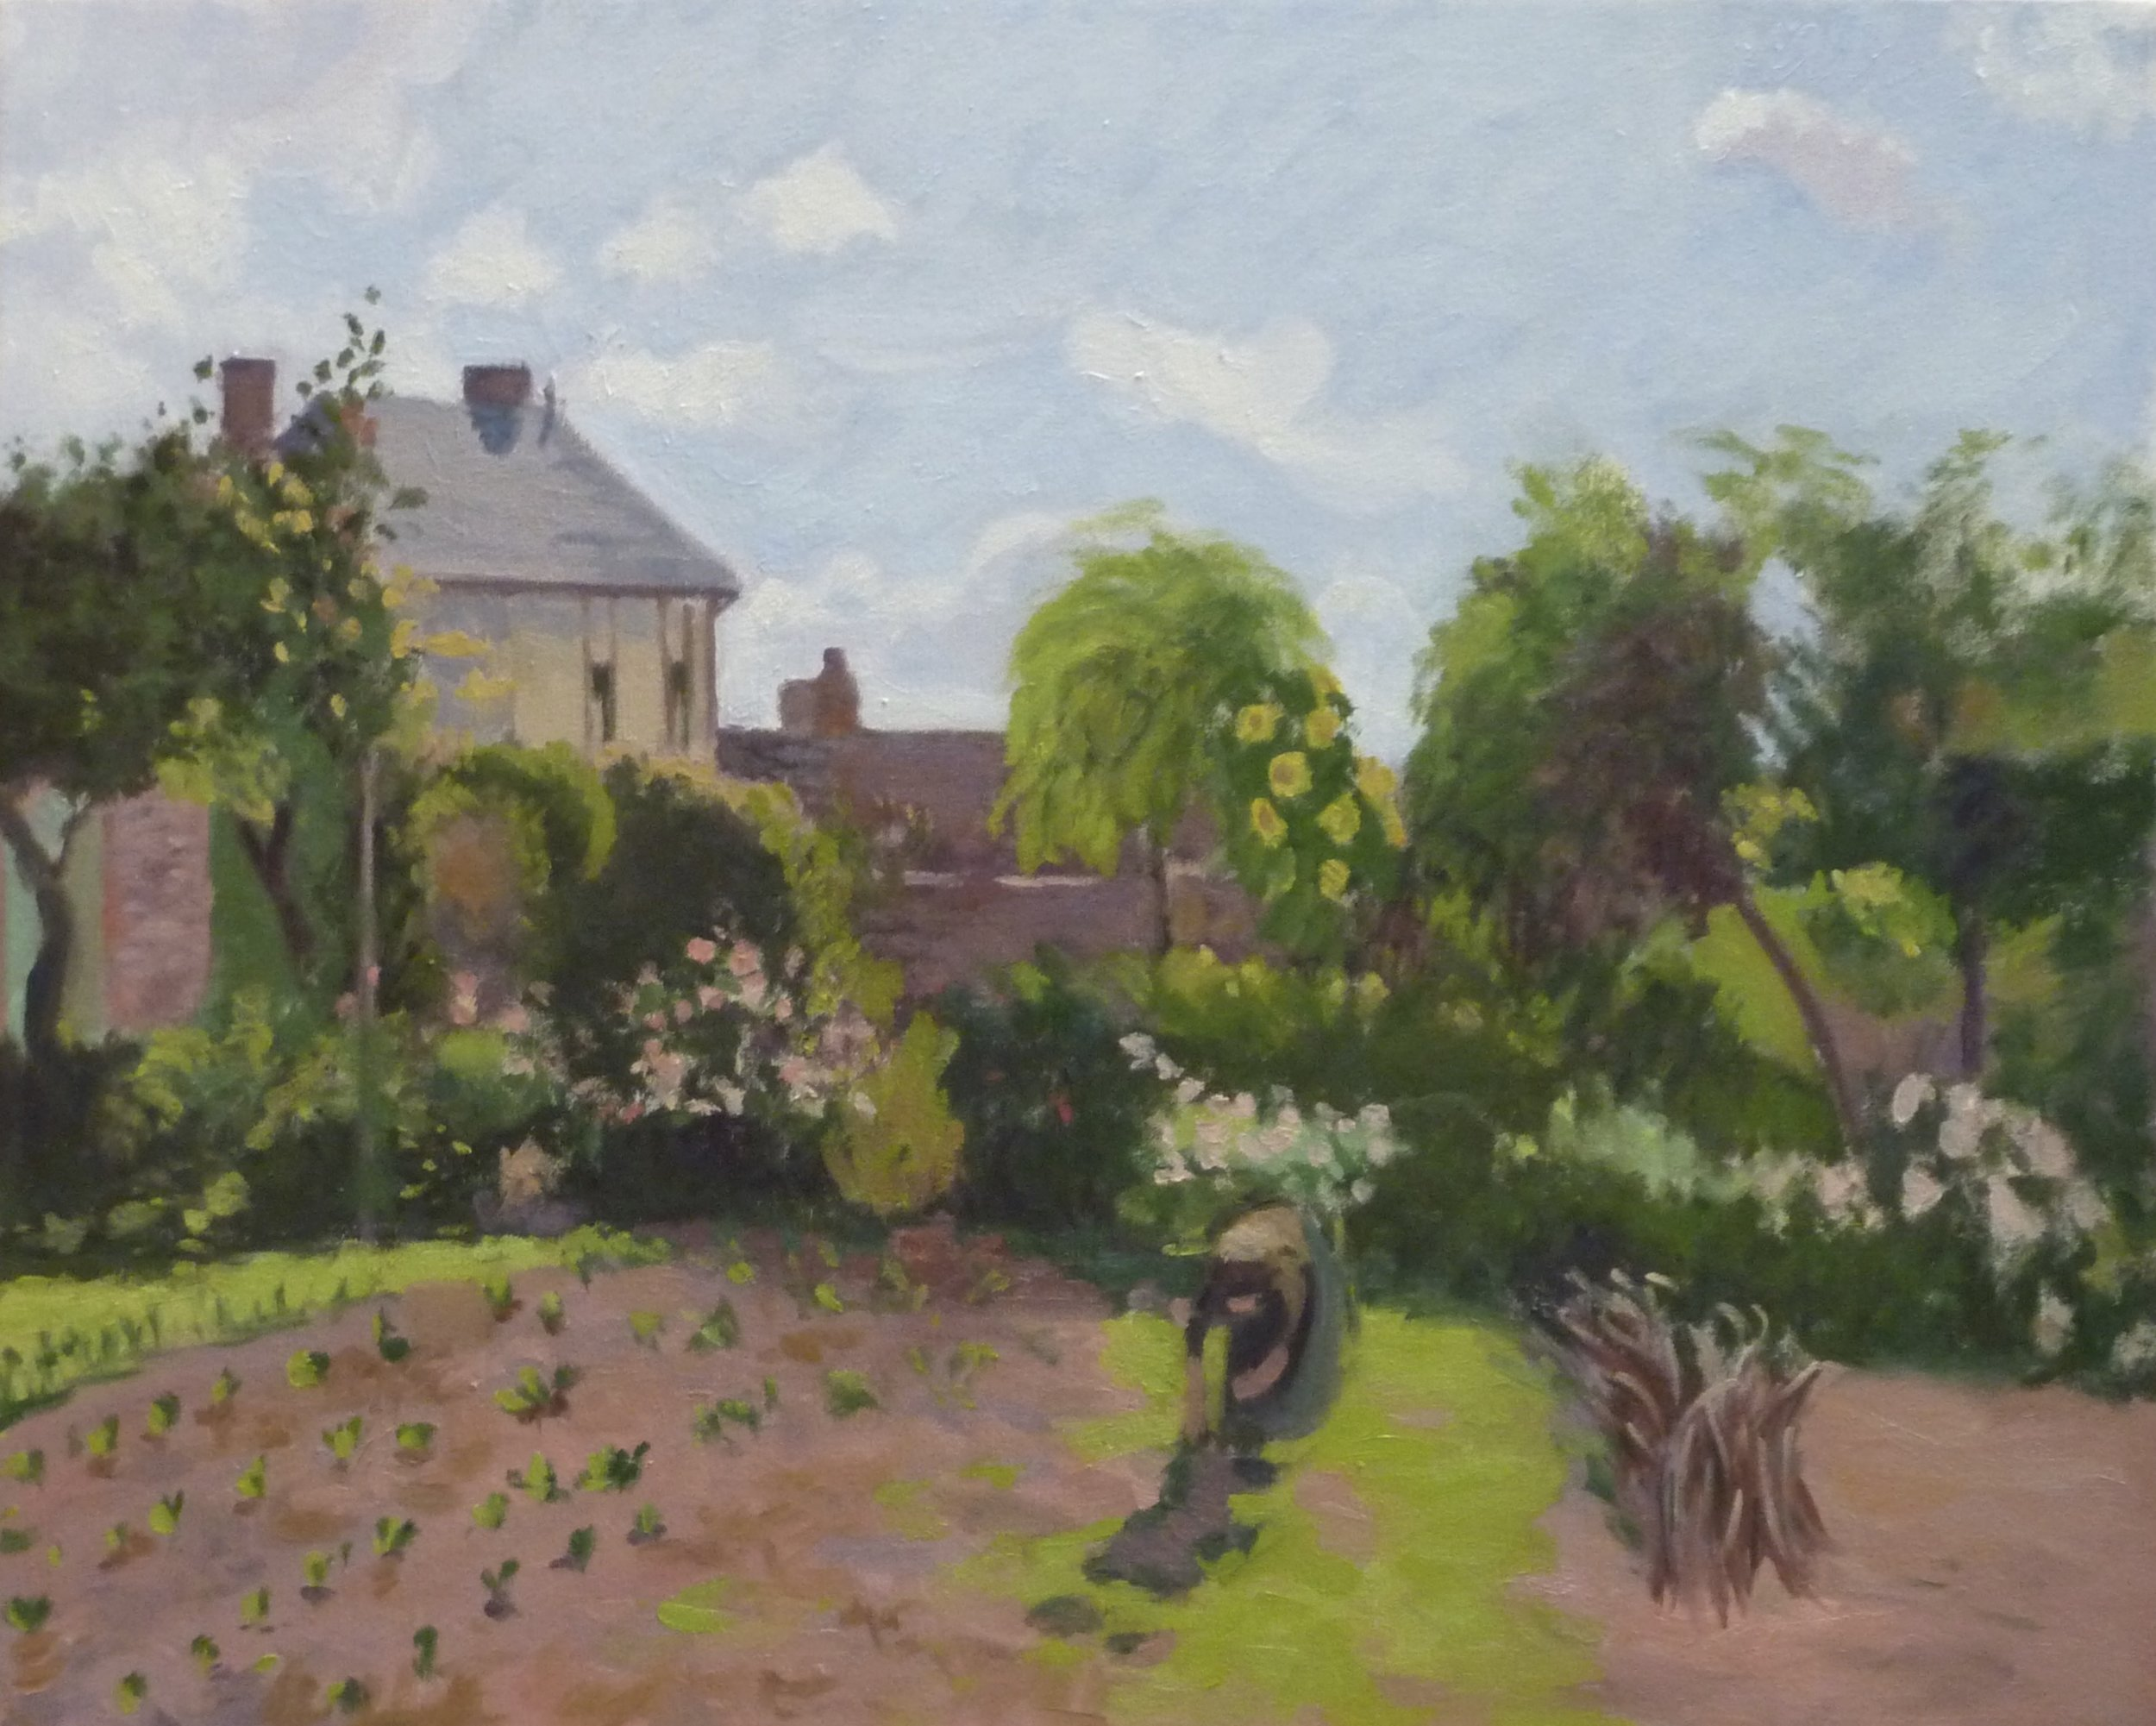 Copy after Camille Pissarro